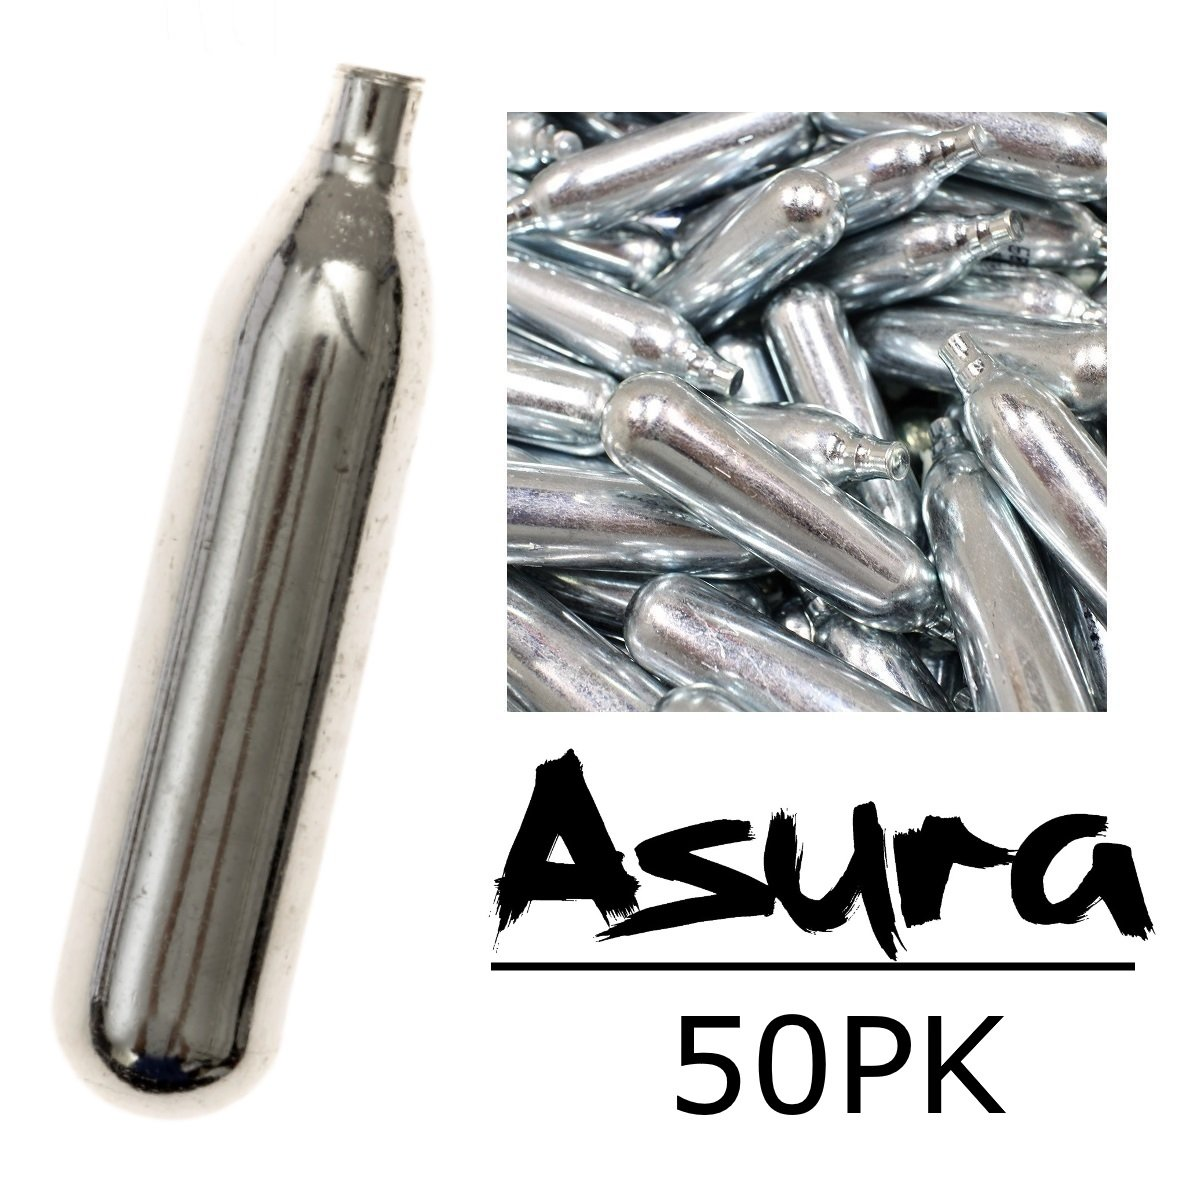 Asura 12g CO2 Cartridges, Pack of 50 by Asura (Image #1)